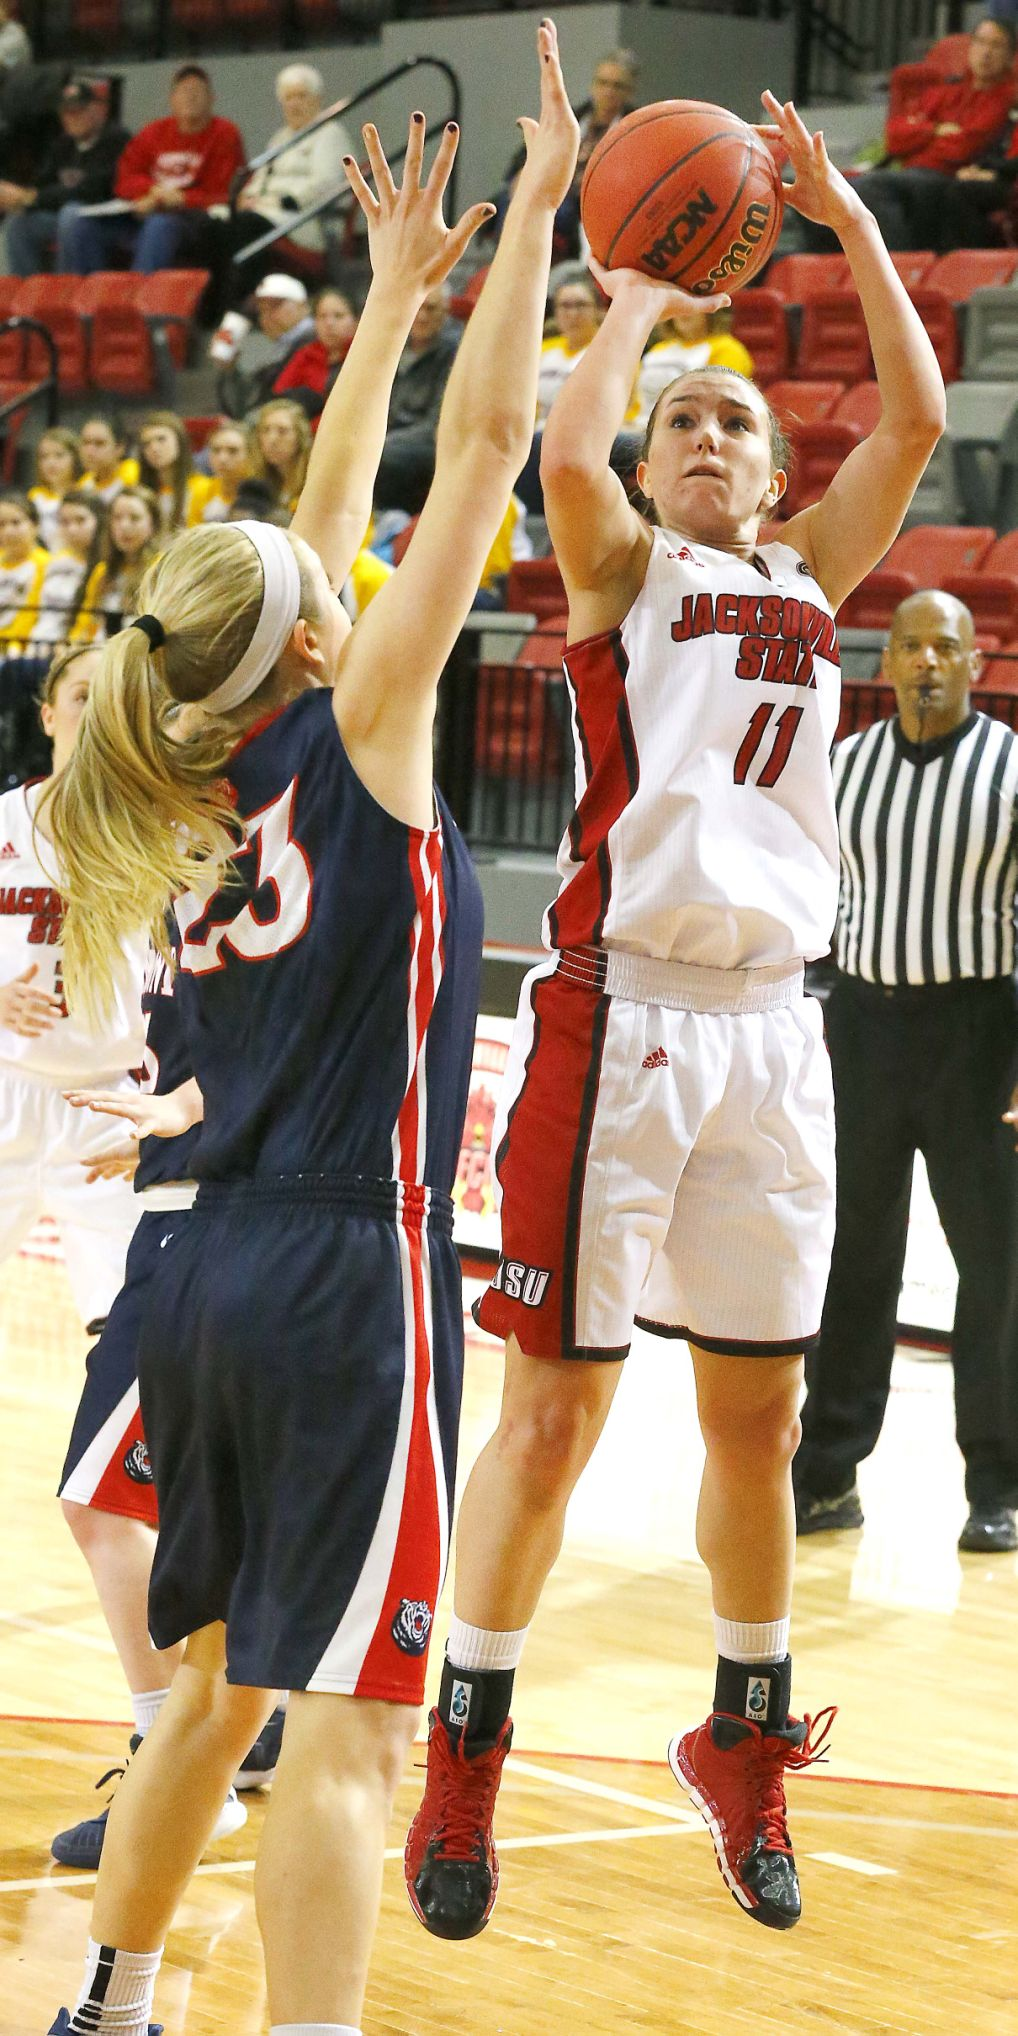 JSU vs Belmont Womens Basketball | Slideshows ...